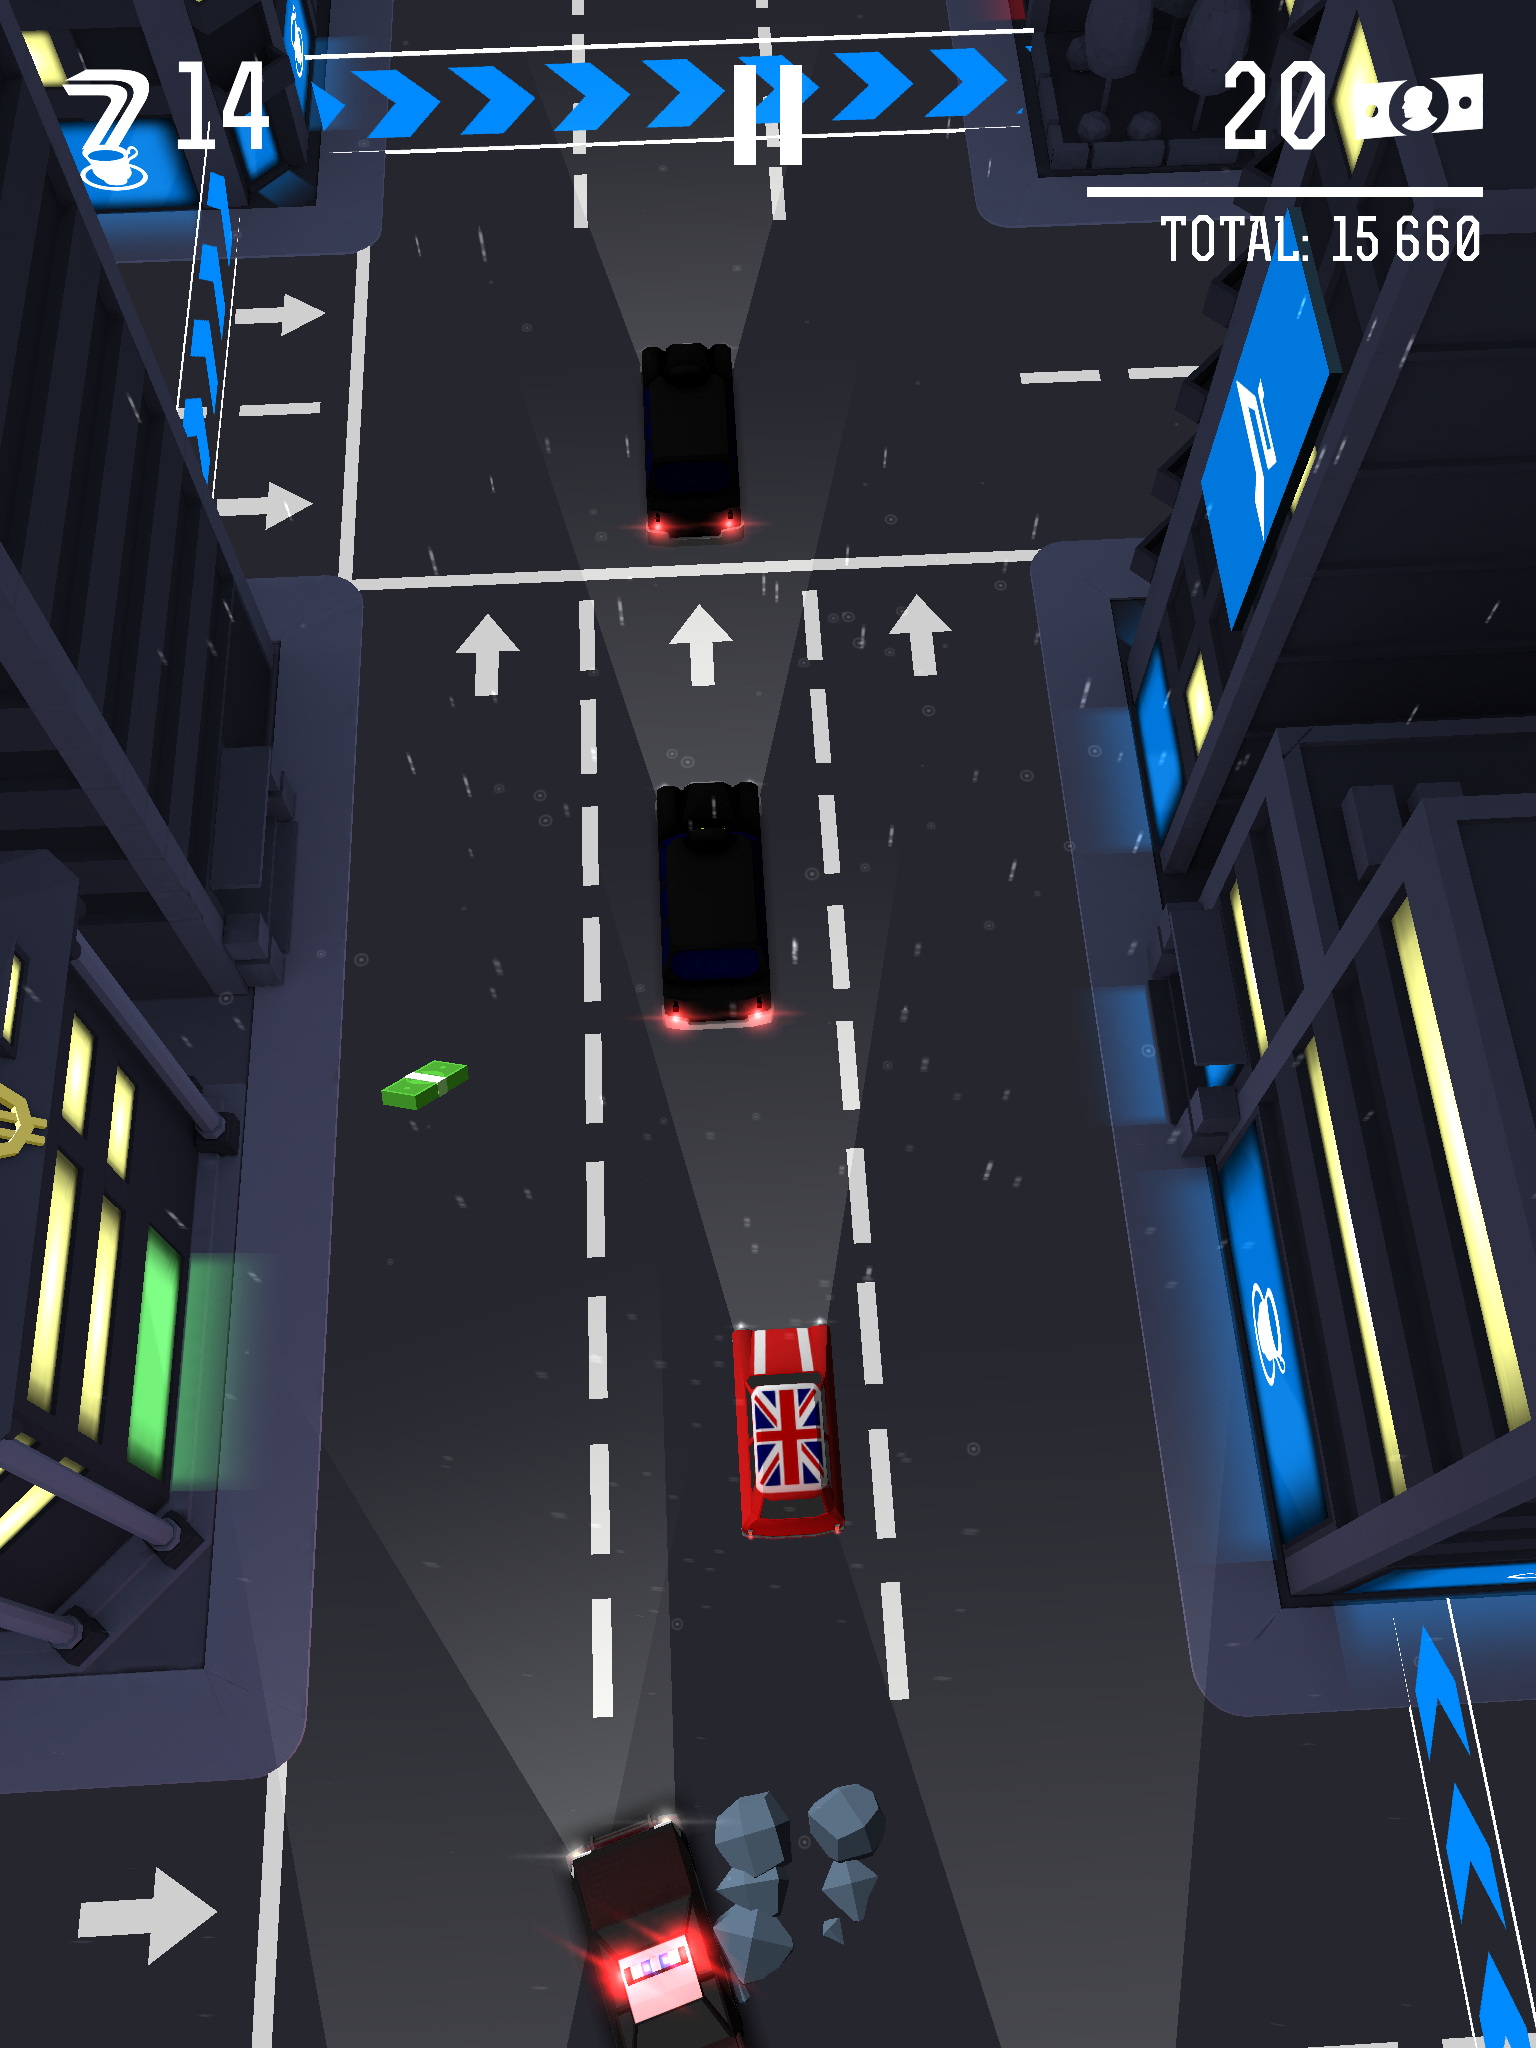 Drifty Chase review - Crossy Road but without the road crossing